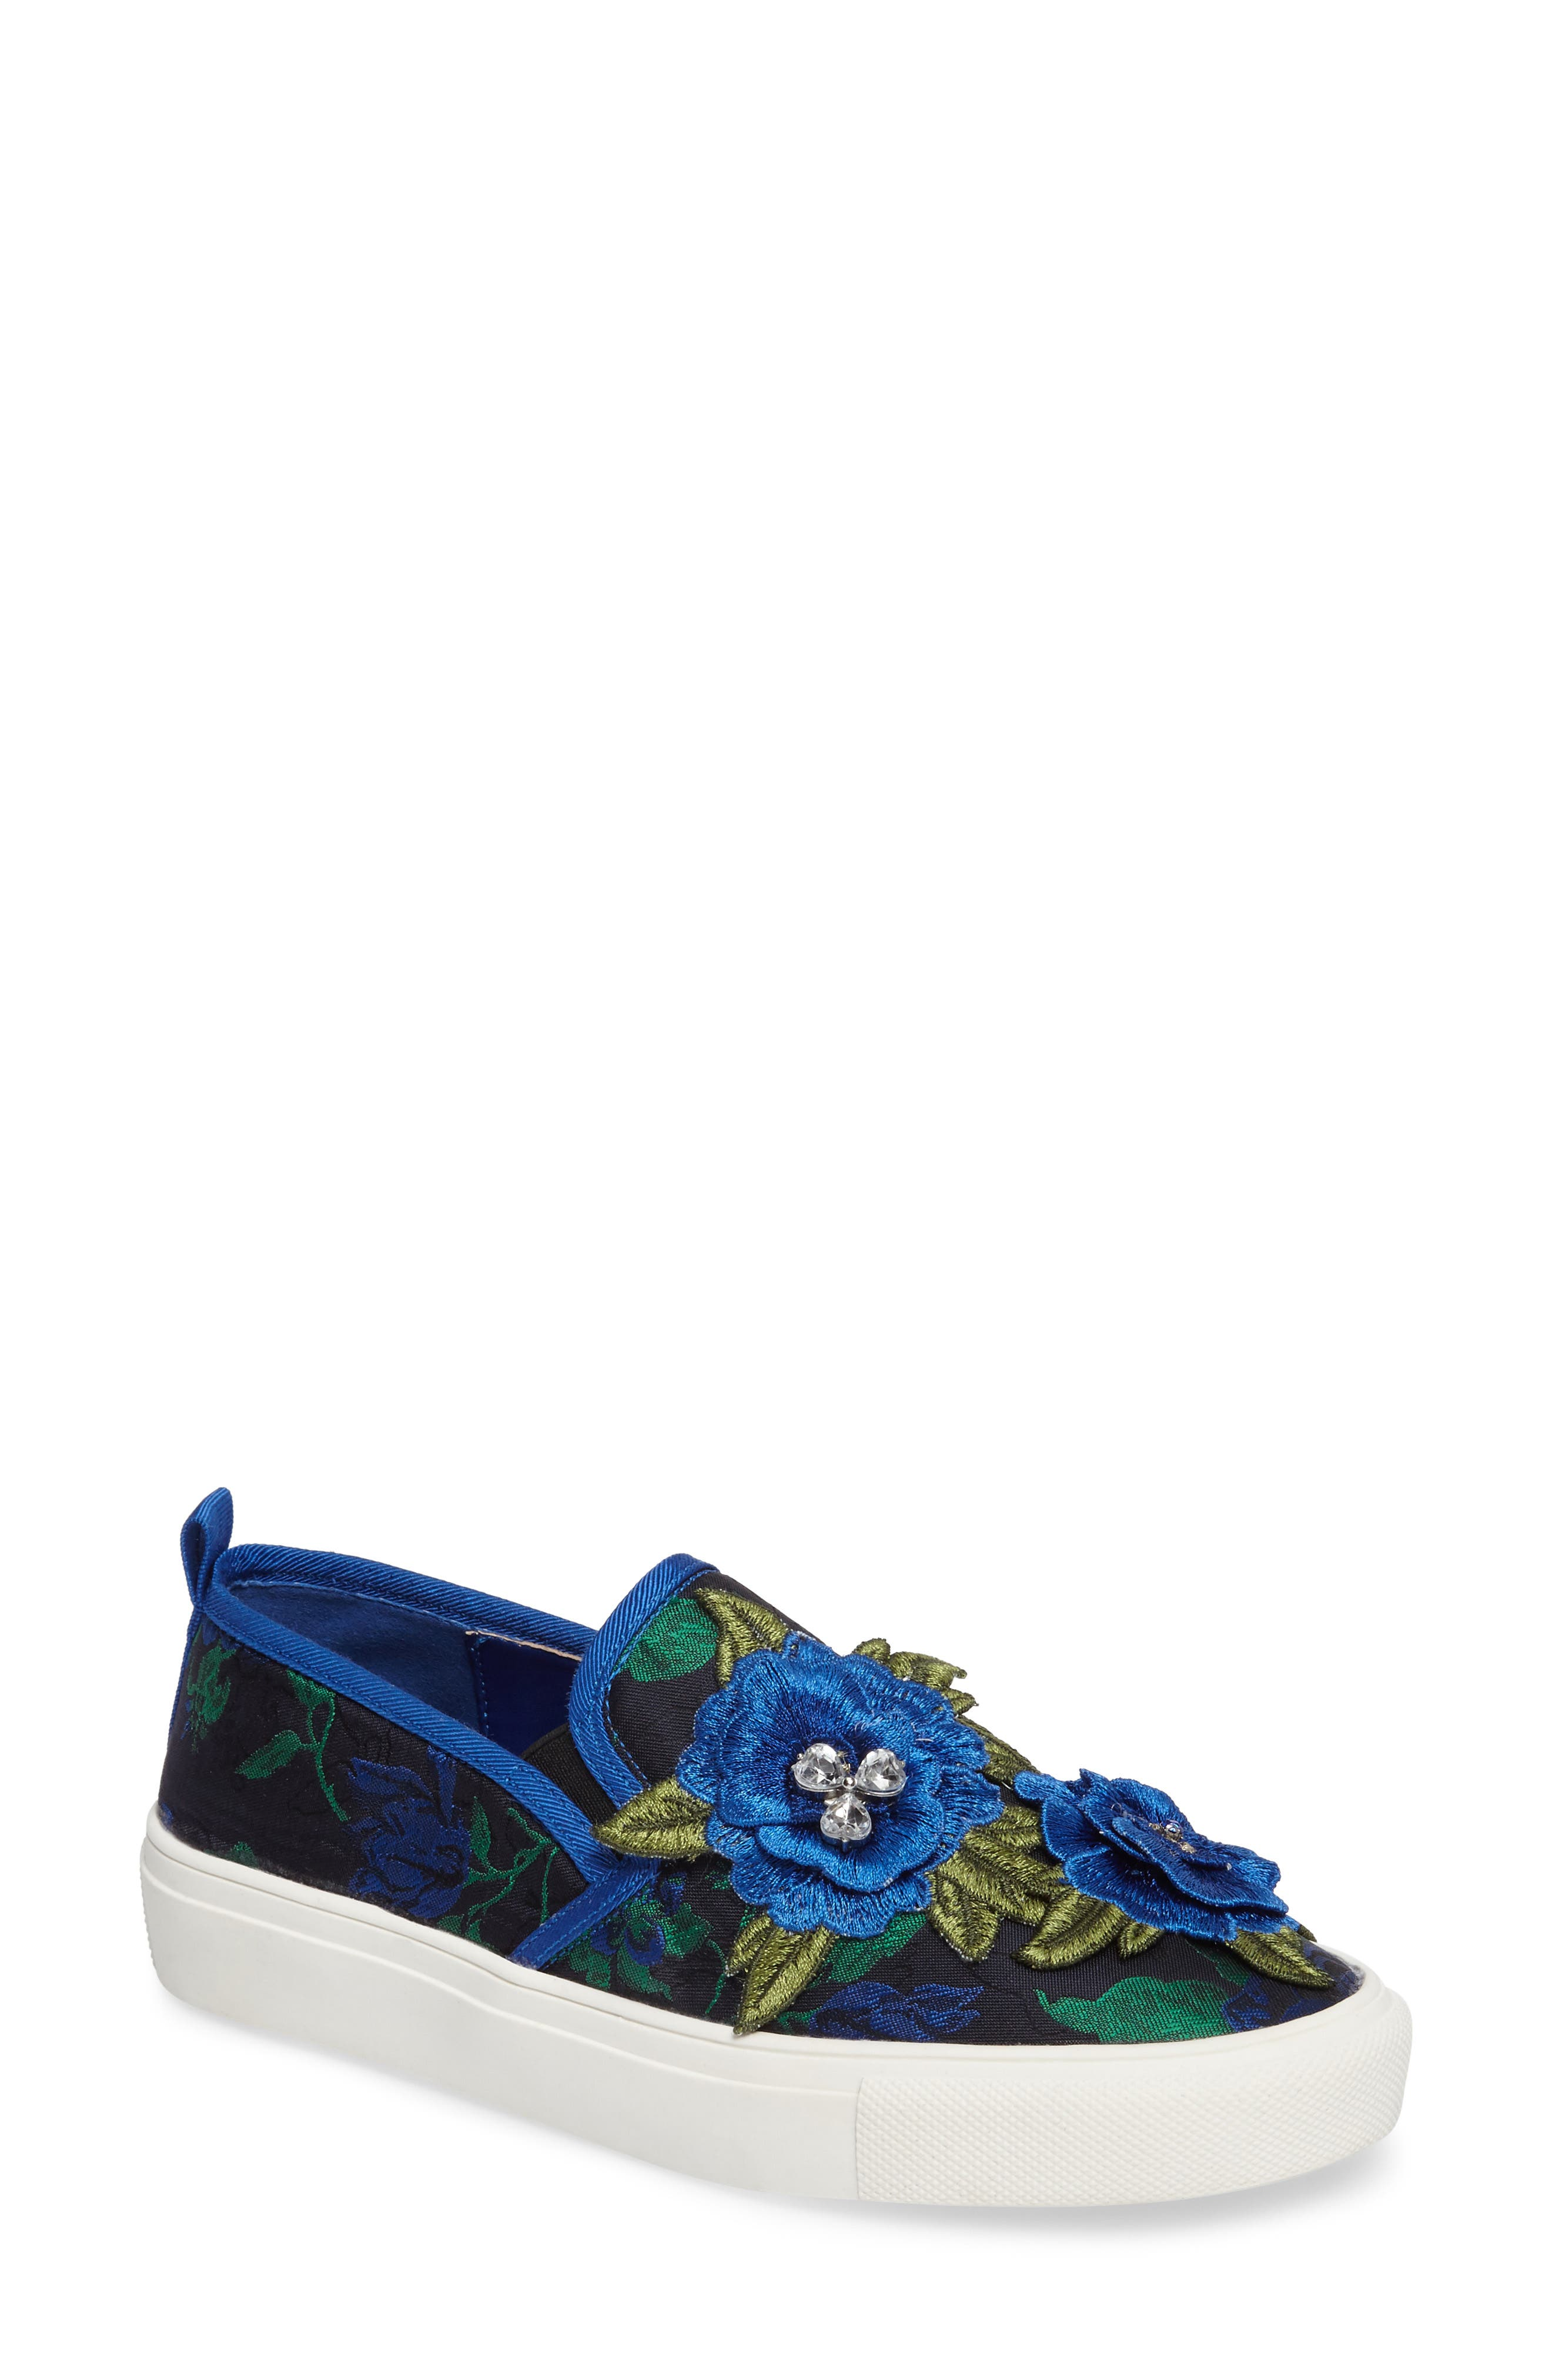 Main Image - Topshop Tessa Embroidered Slip-On Sneaker (Women)